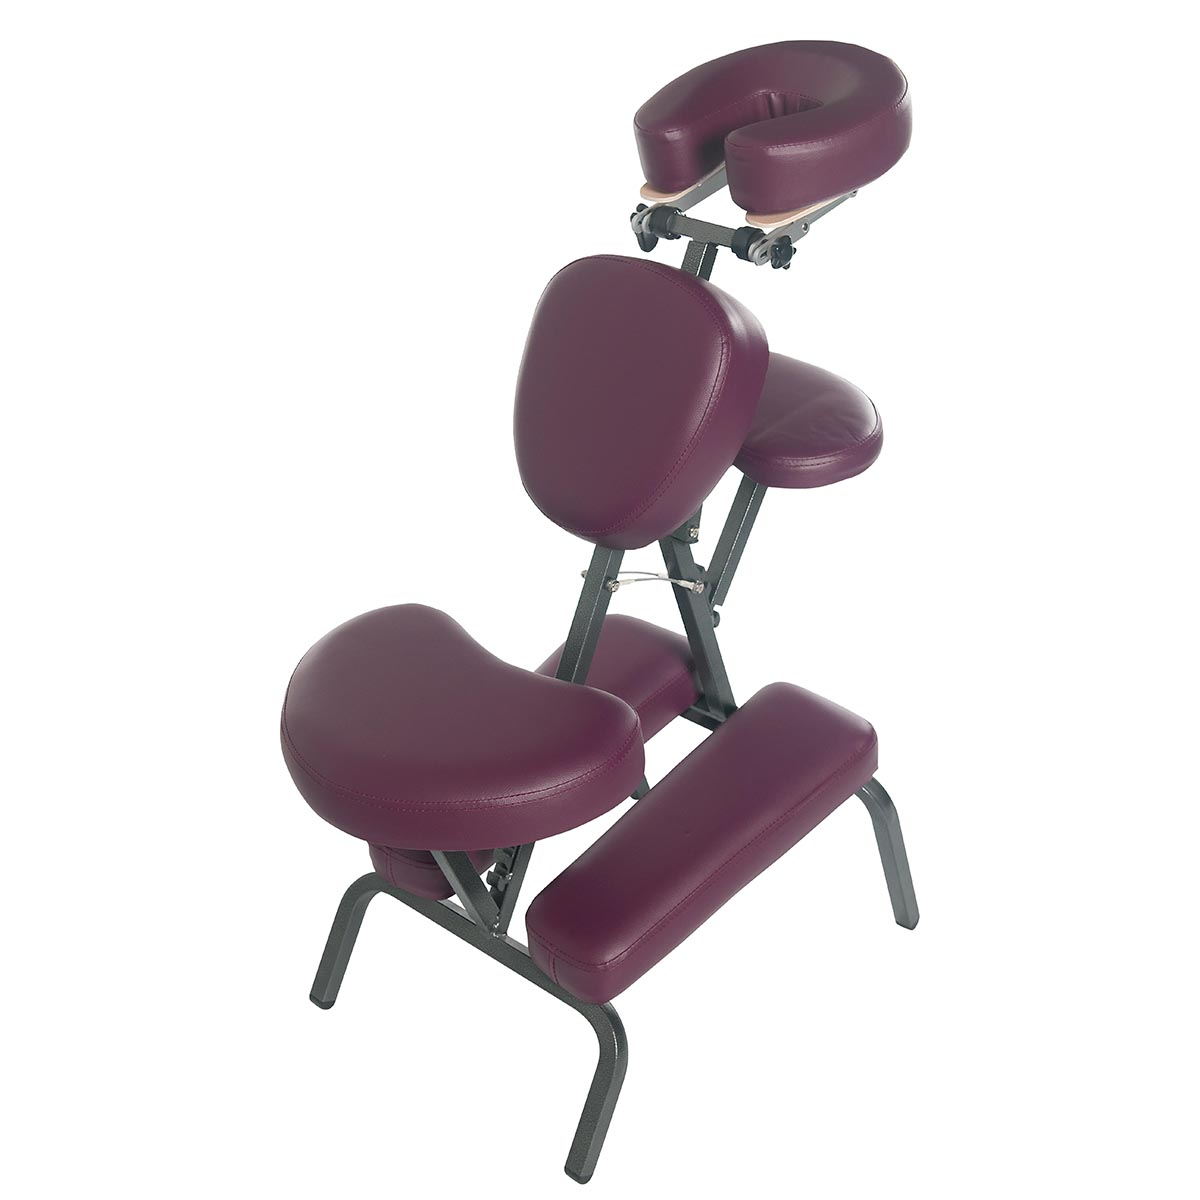 3b pro massage chair burgundy - Massage Chair For Sale